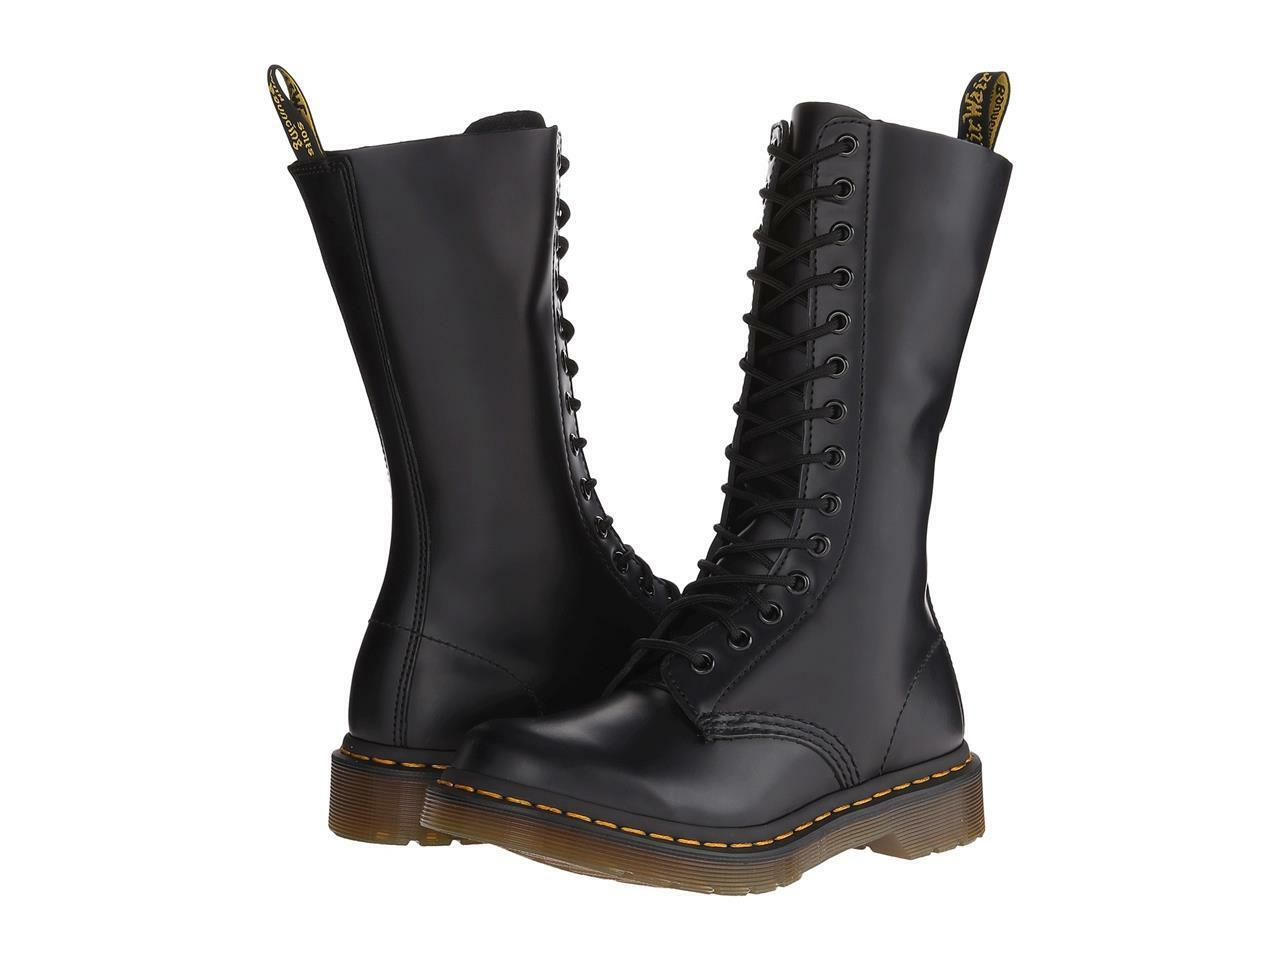 Doc Martens Black 1914 Airwair Bouncing Sole Buttero Leather 14 Eye Wms Boots 5